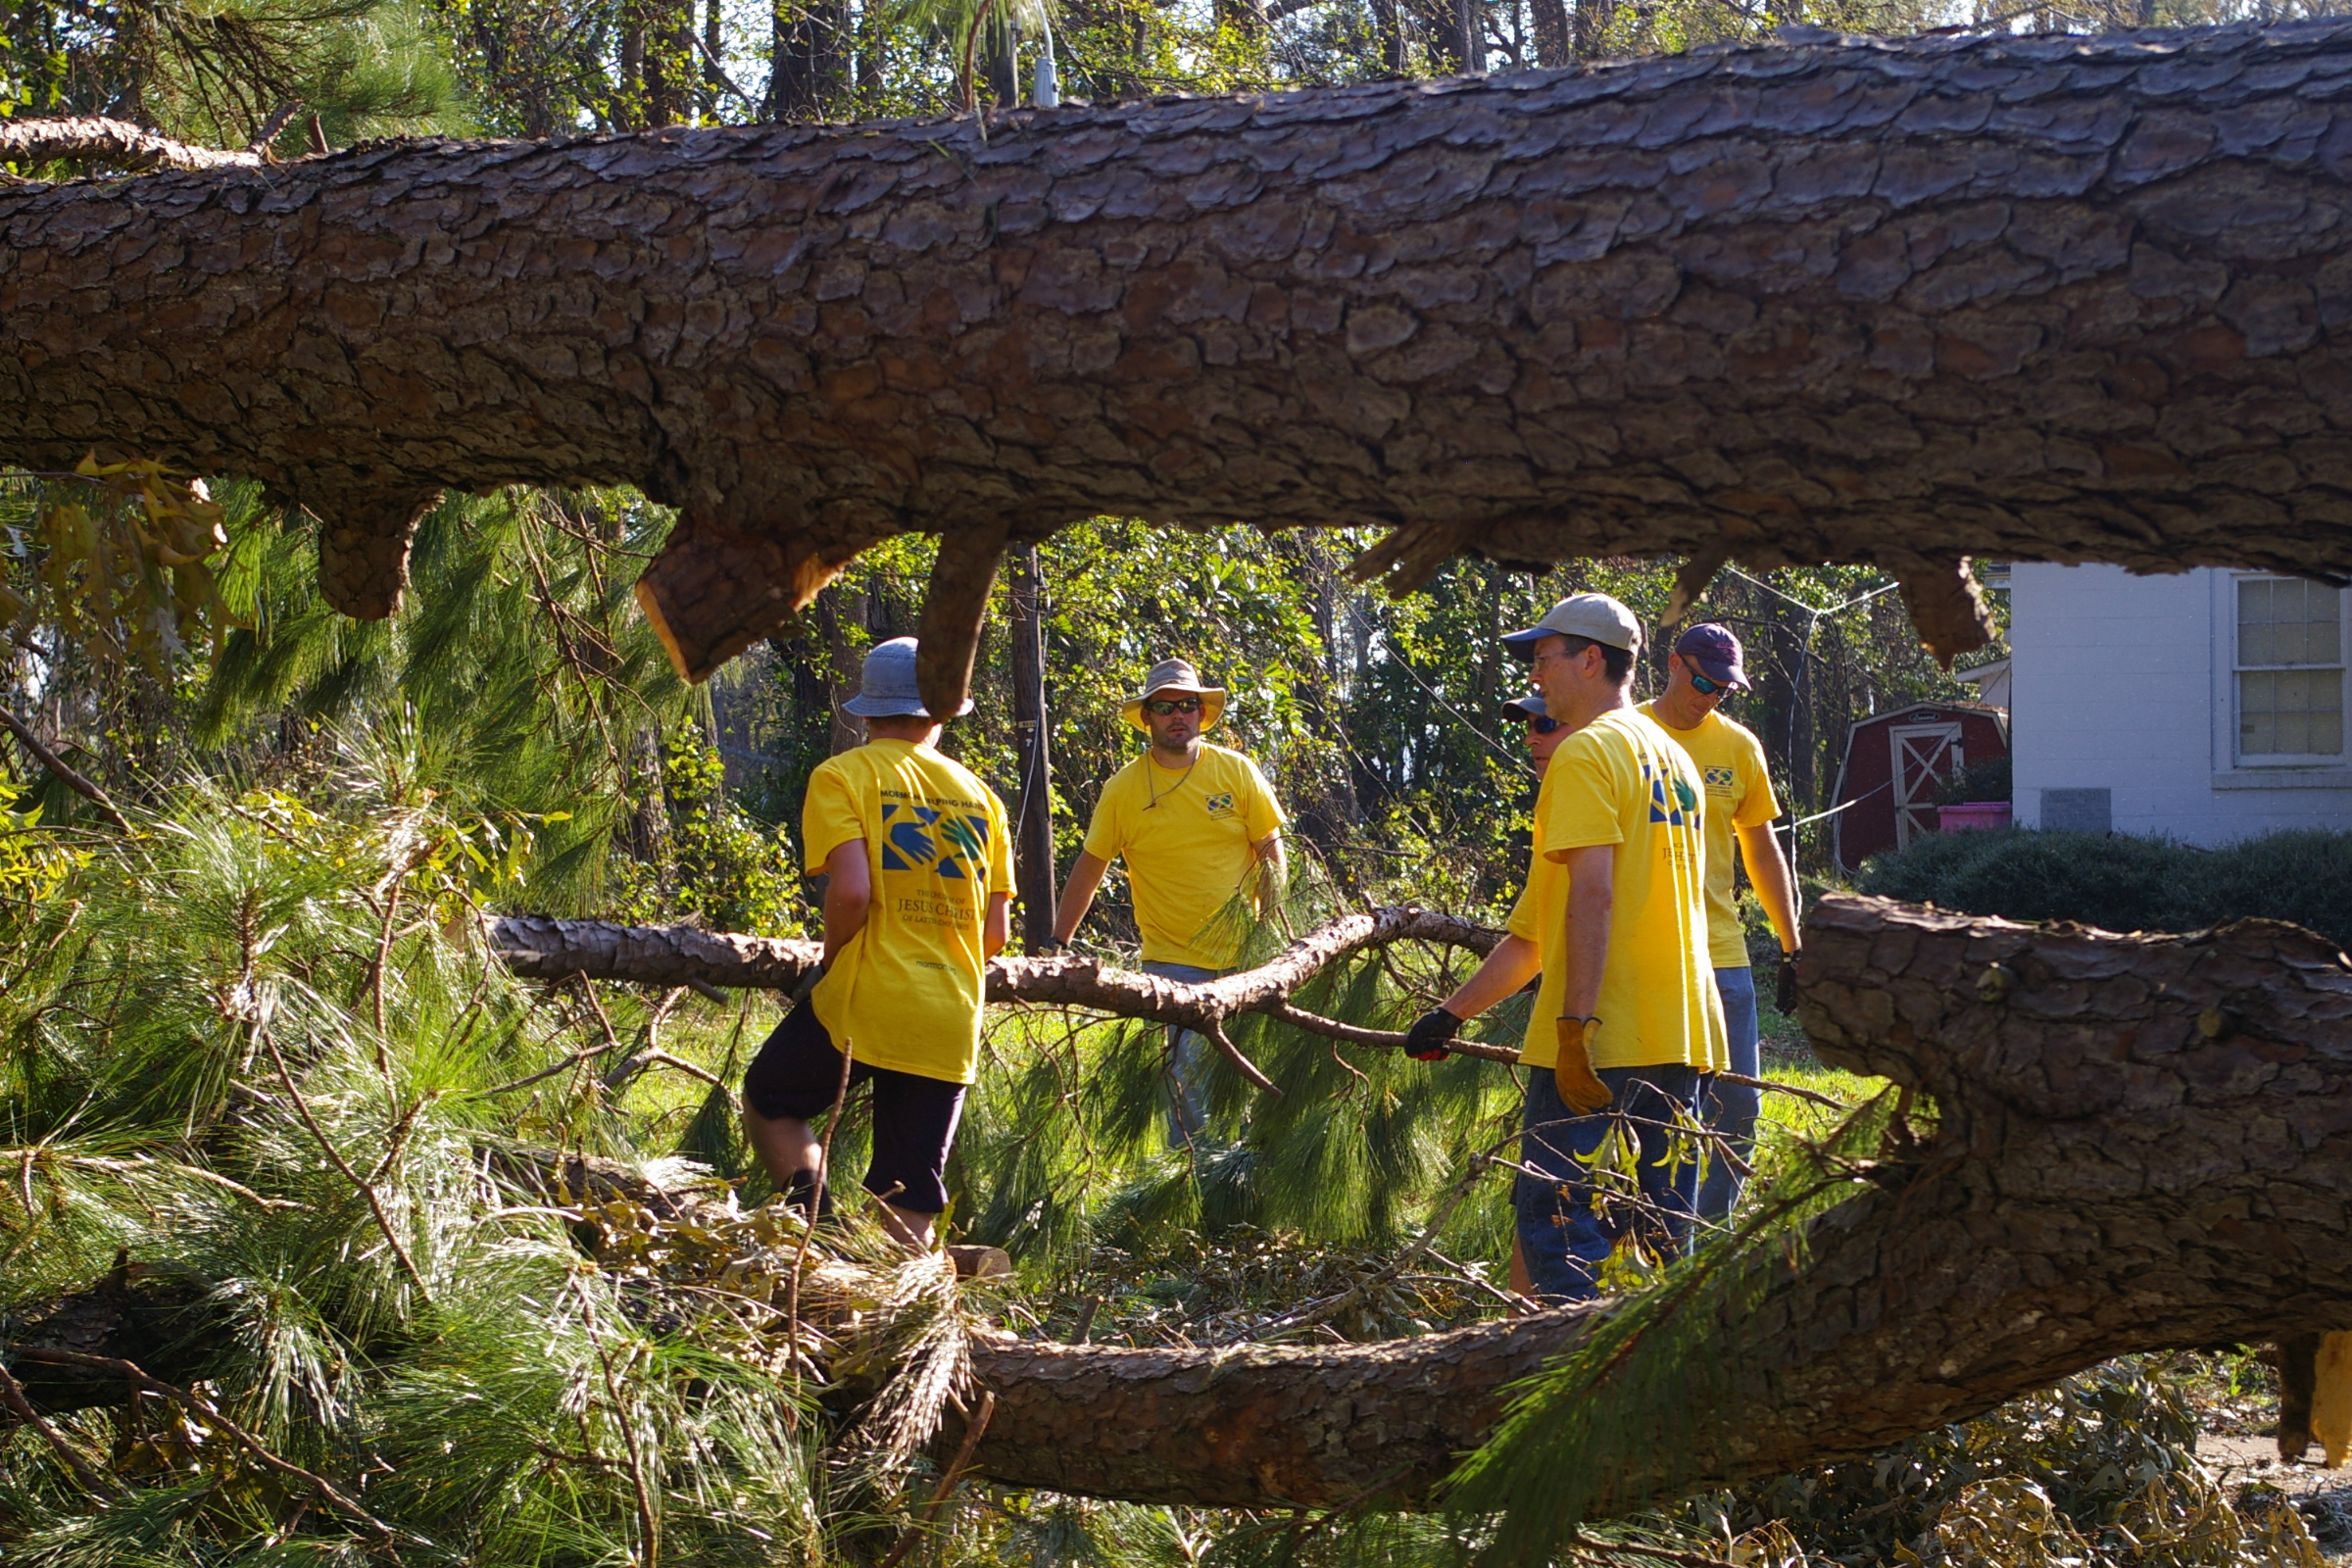 Church-sponsored Helping Hands crews clear out branches and fallen trees outside hurricane-impacted home in Wilmington, North Carolina.